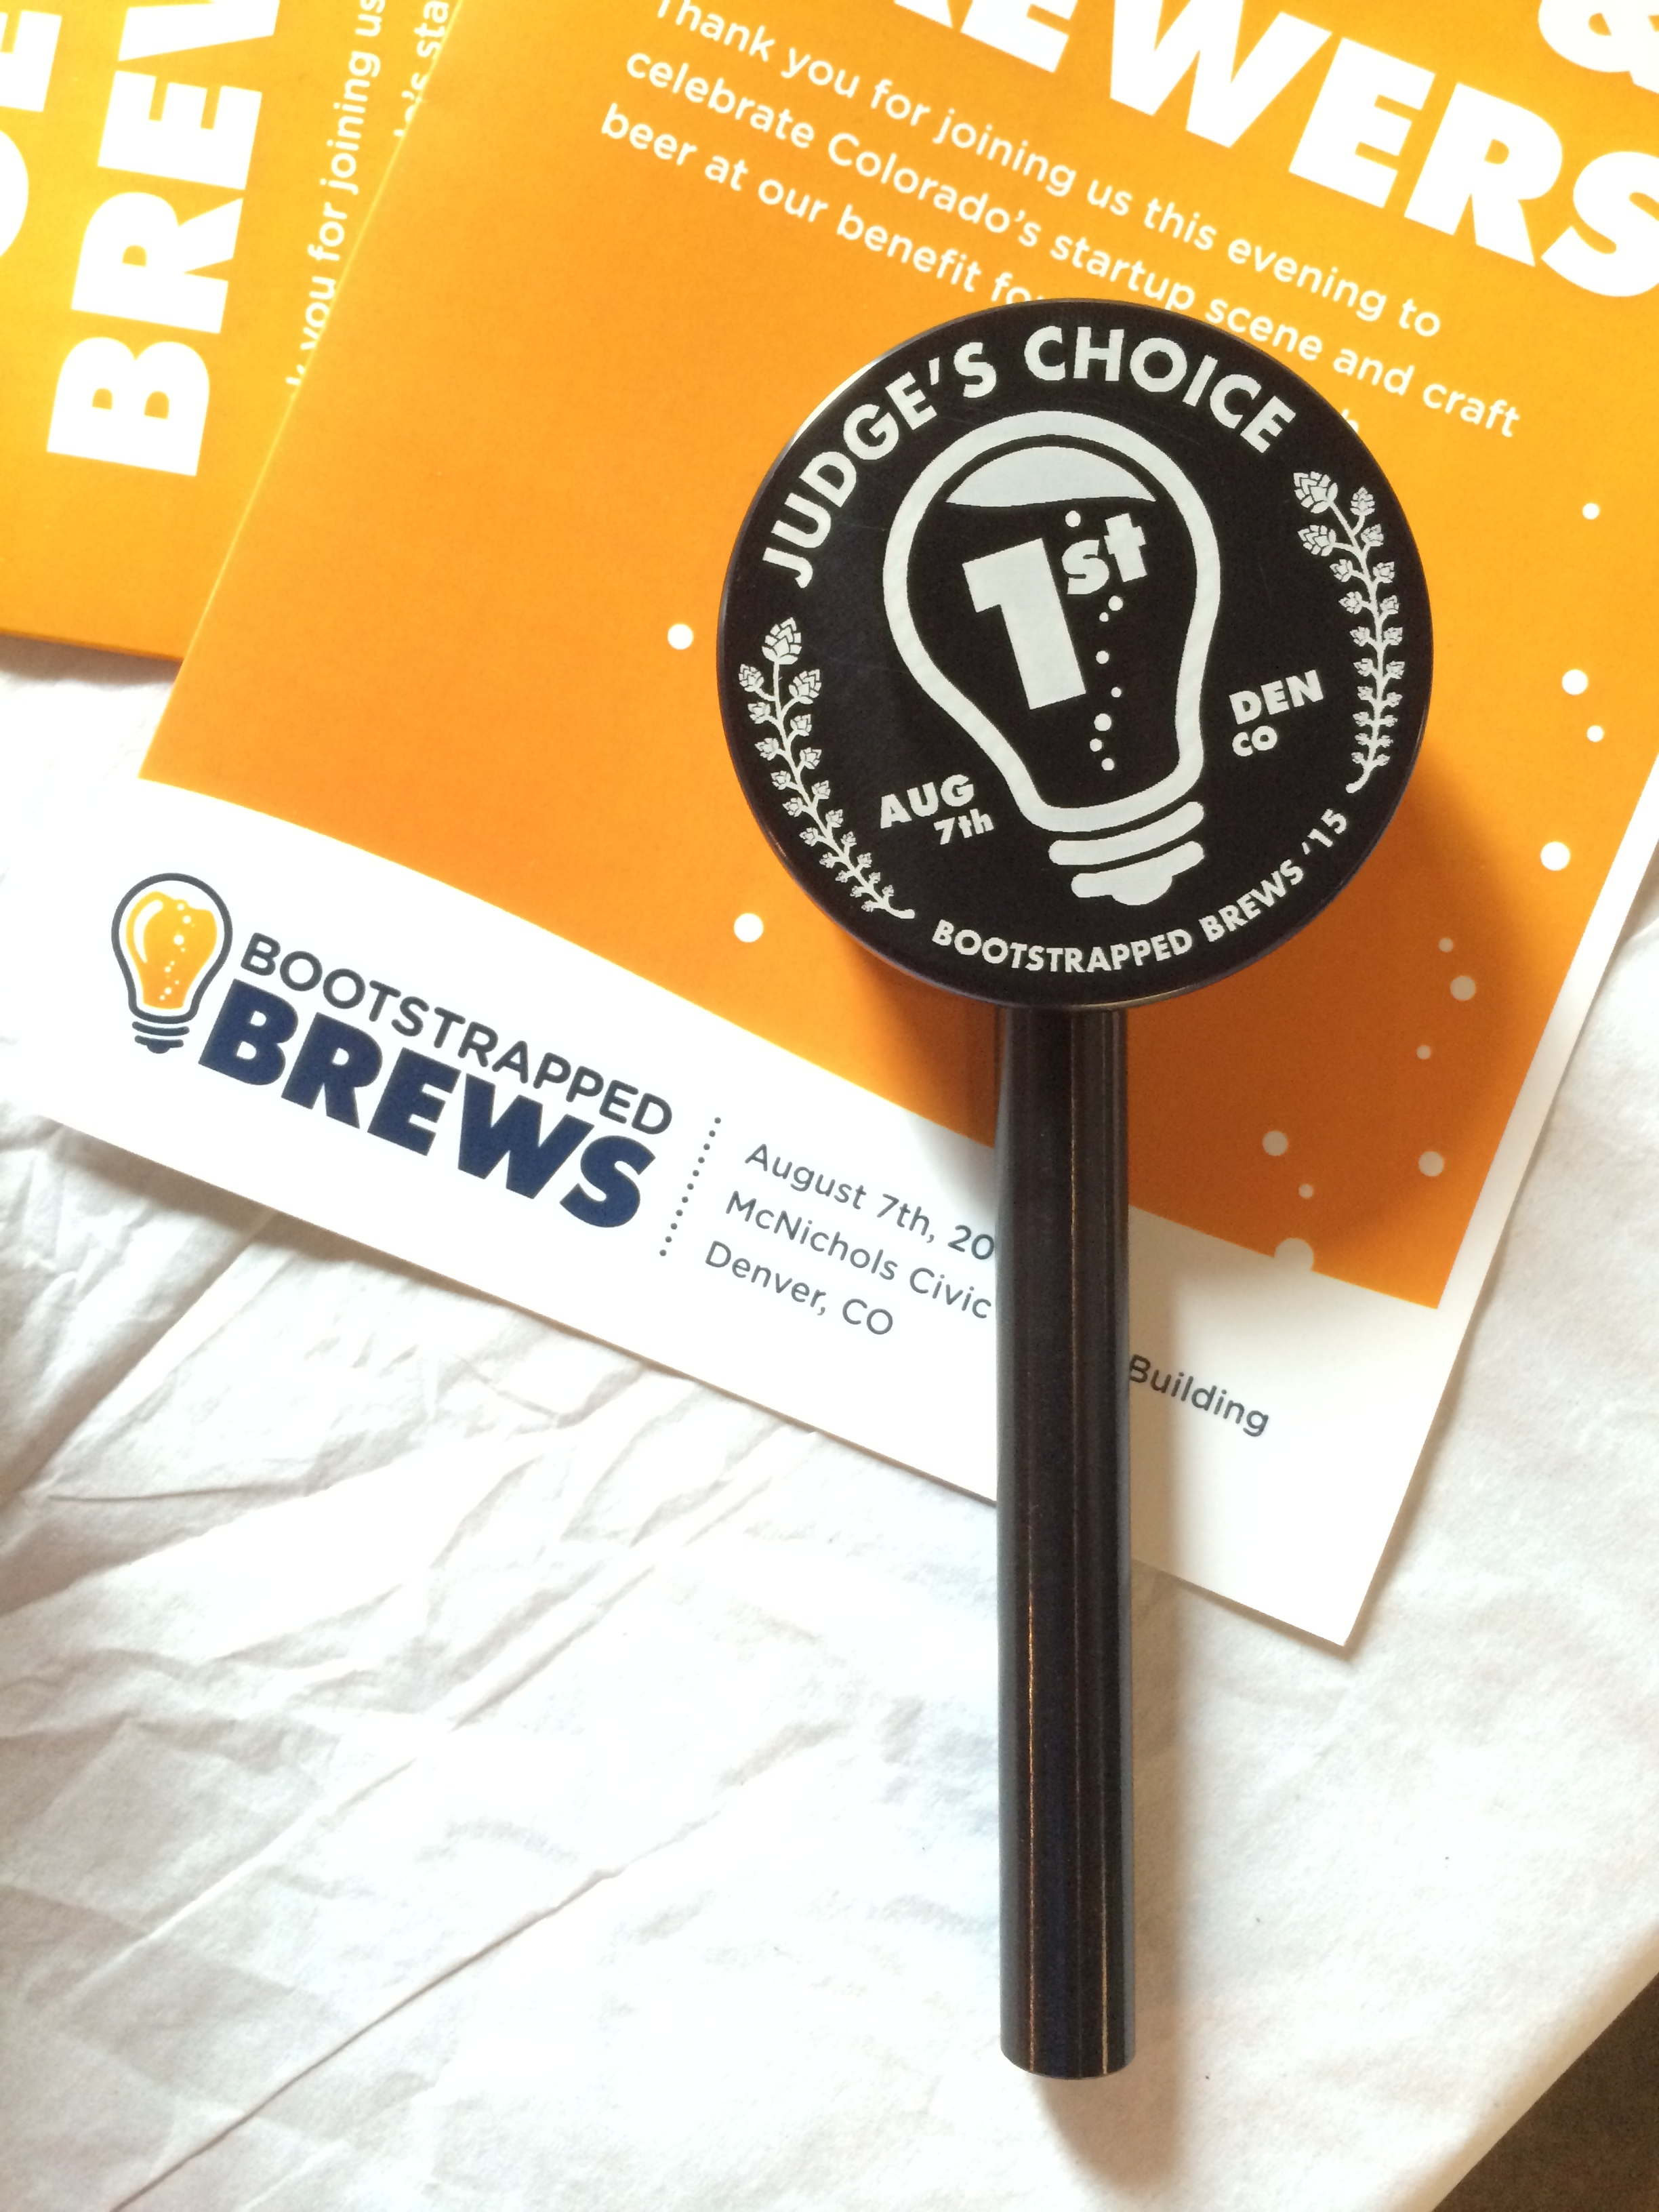 We worked with Bootstrapped Brews to create customized Keg Cap Tap handles that were given as trophies to the winners at the their brewing competition.